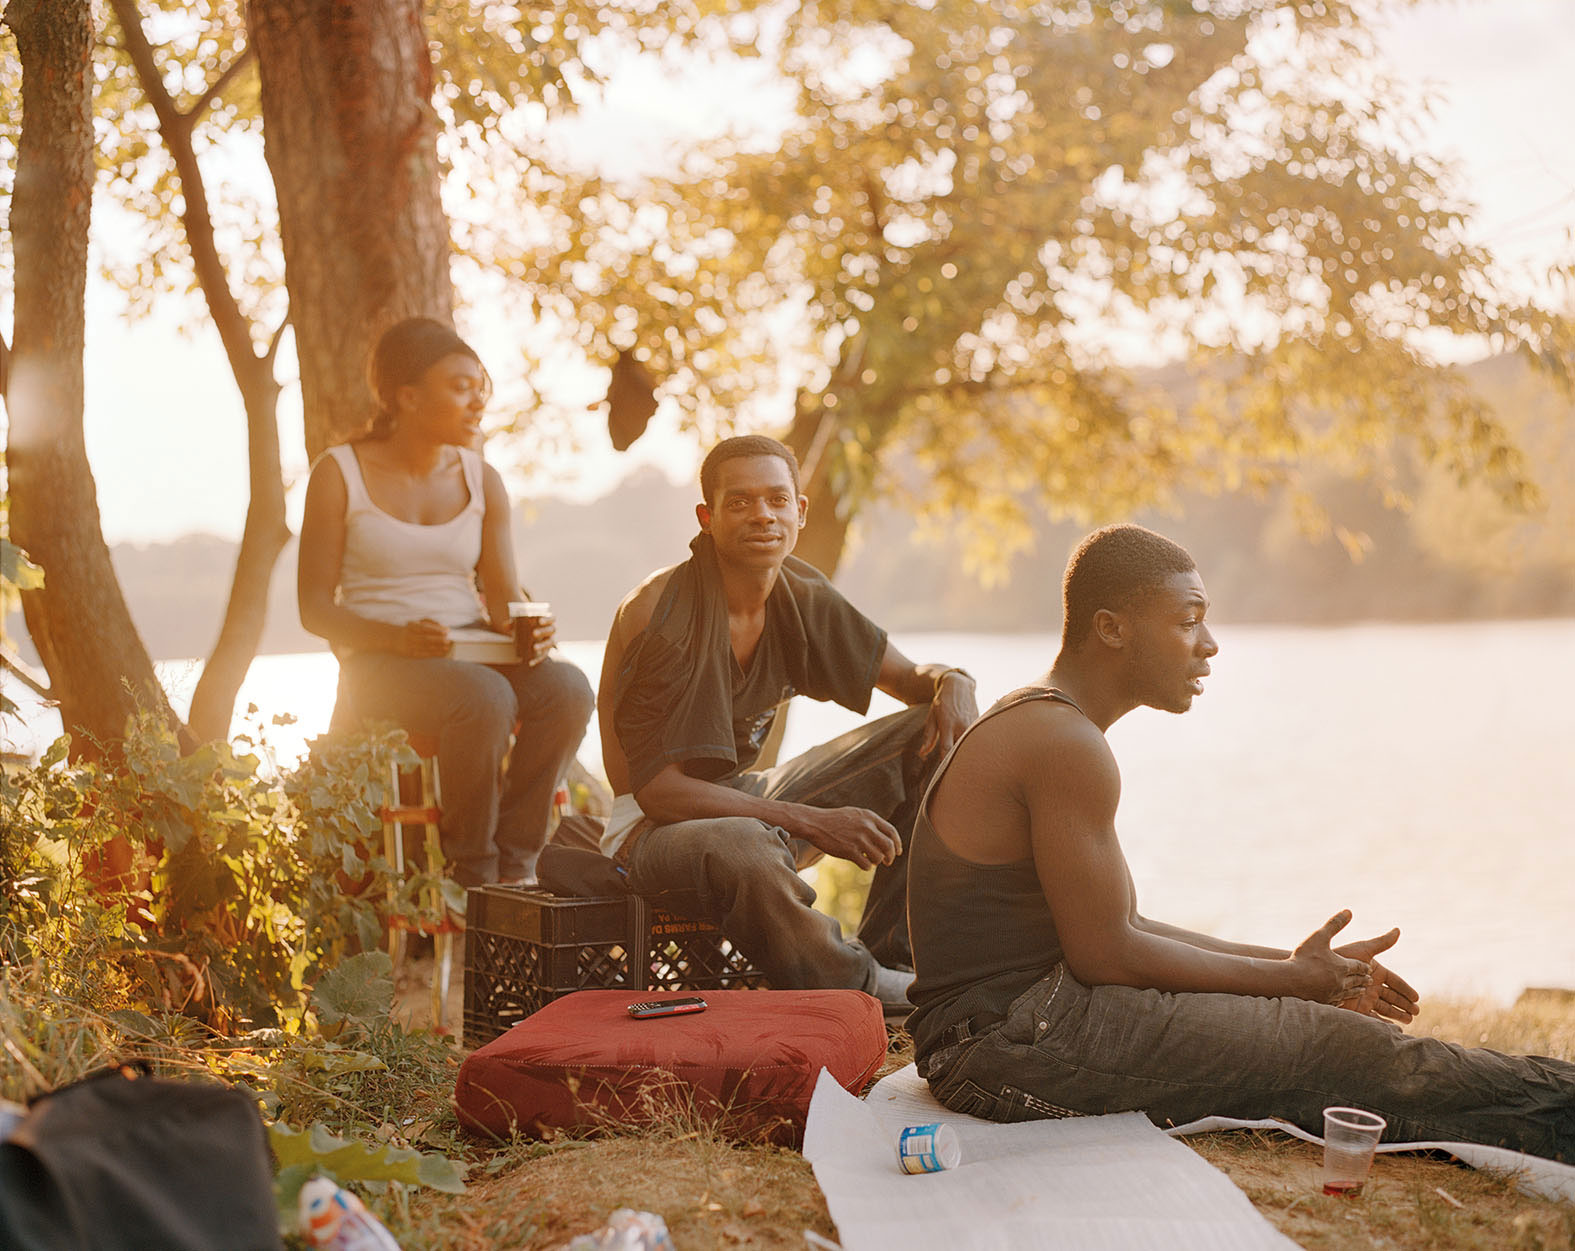 three African American figures, a woman and two men, sit near the lake, all awash in golden light and two men